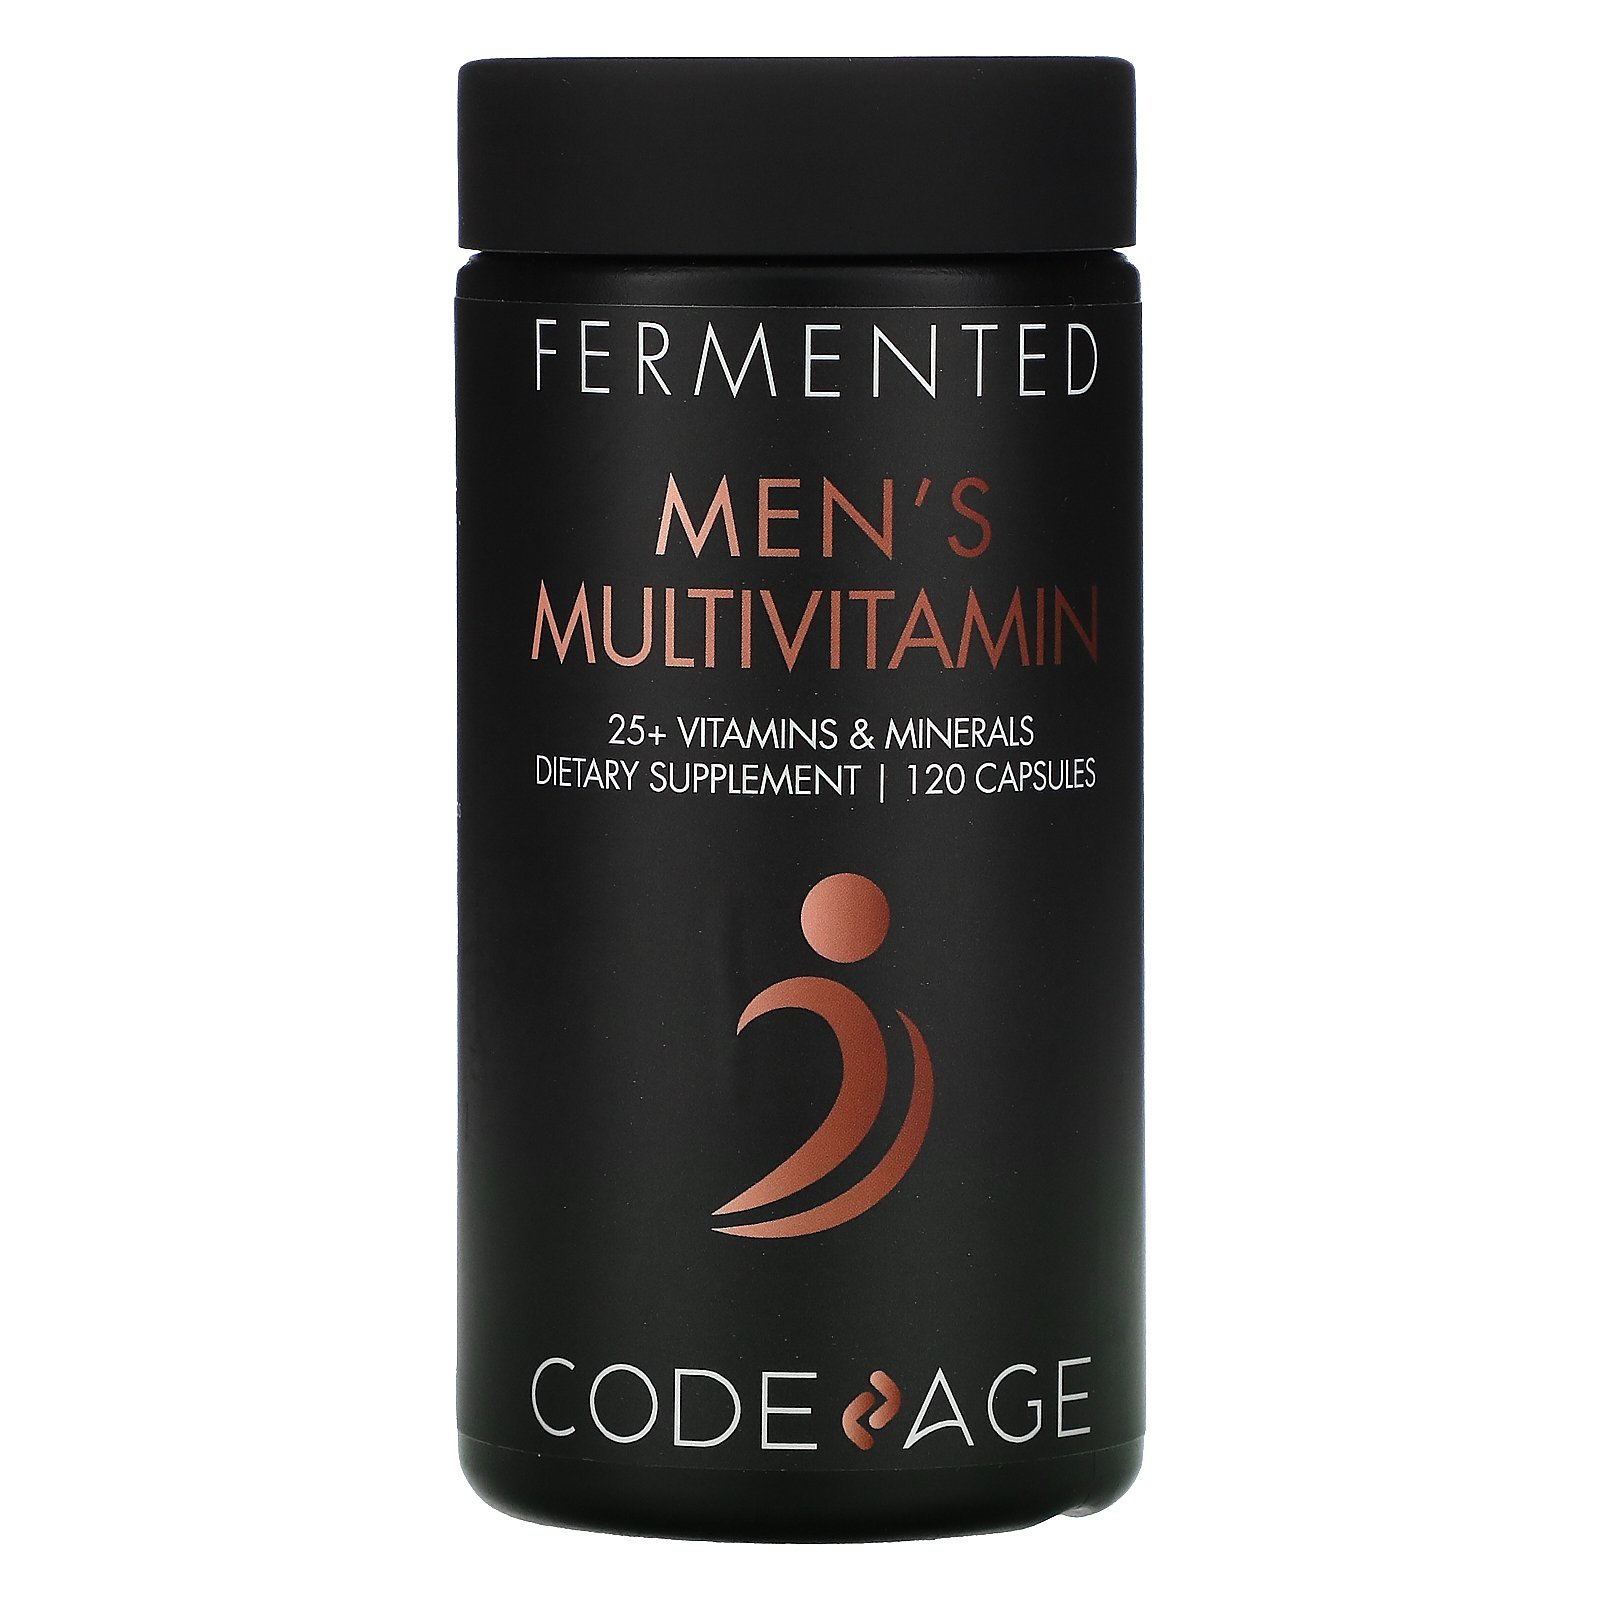 CodeAge, Fermented, Men's Multivitamin, 120 Capsules